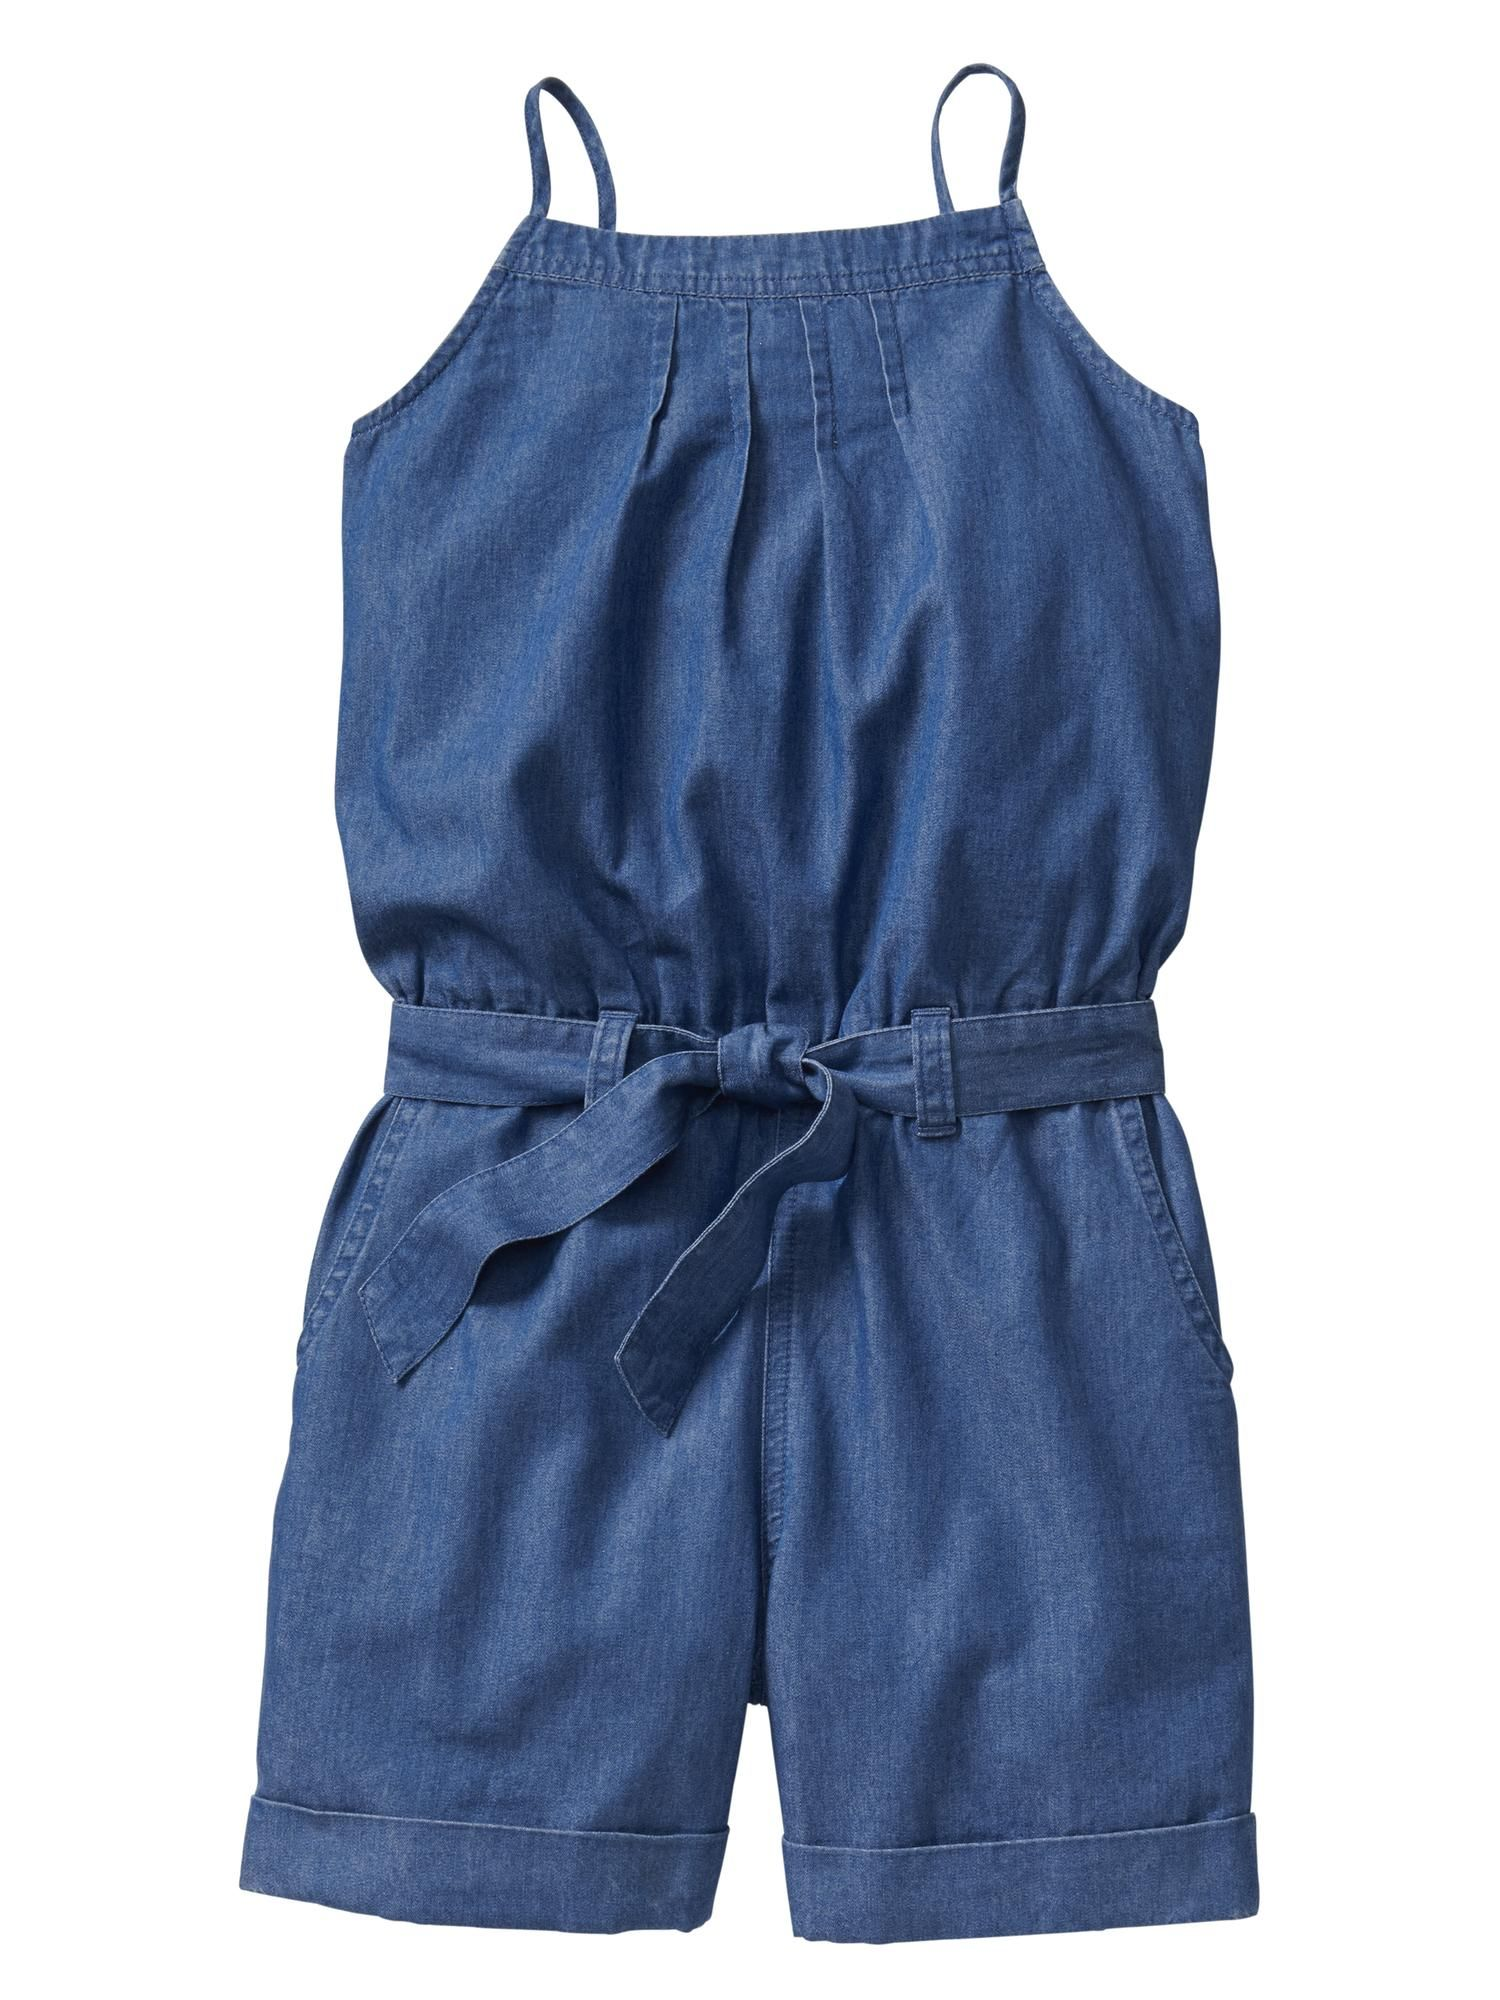 08b5f77e3 Romper by Gap Factory 4-18 yrs | Girls Pants, Shorts, Rompers and ...